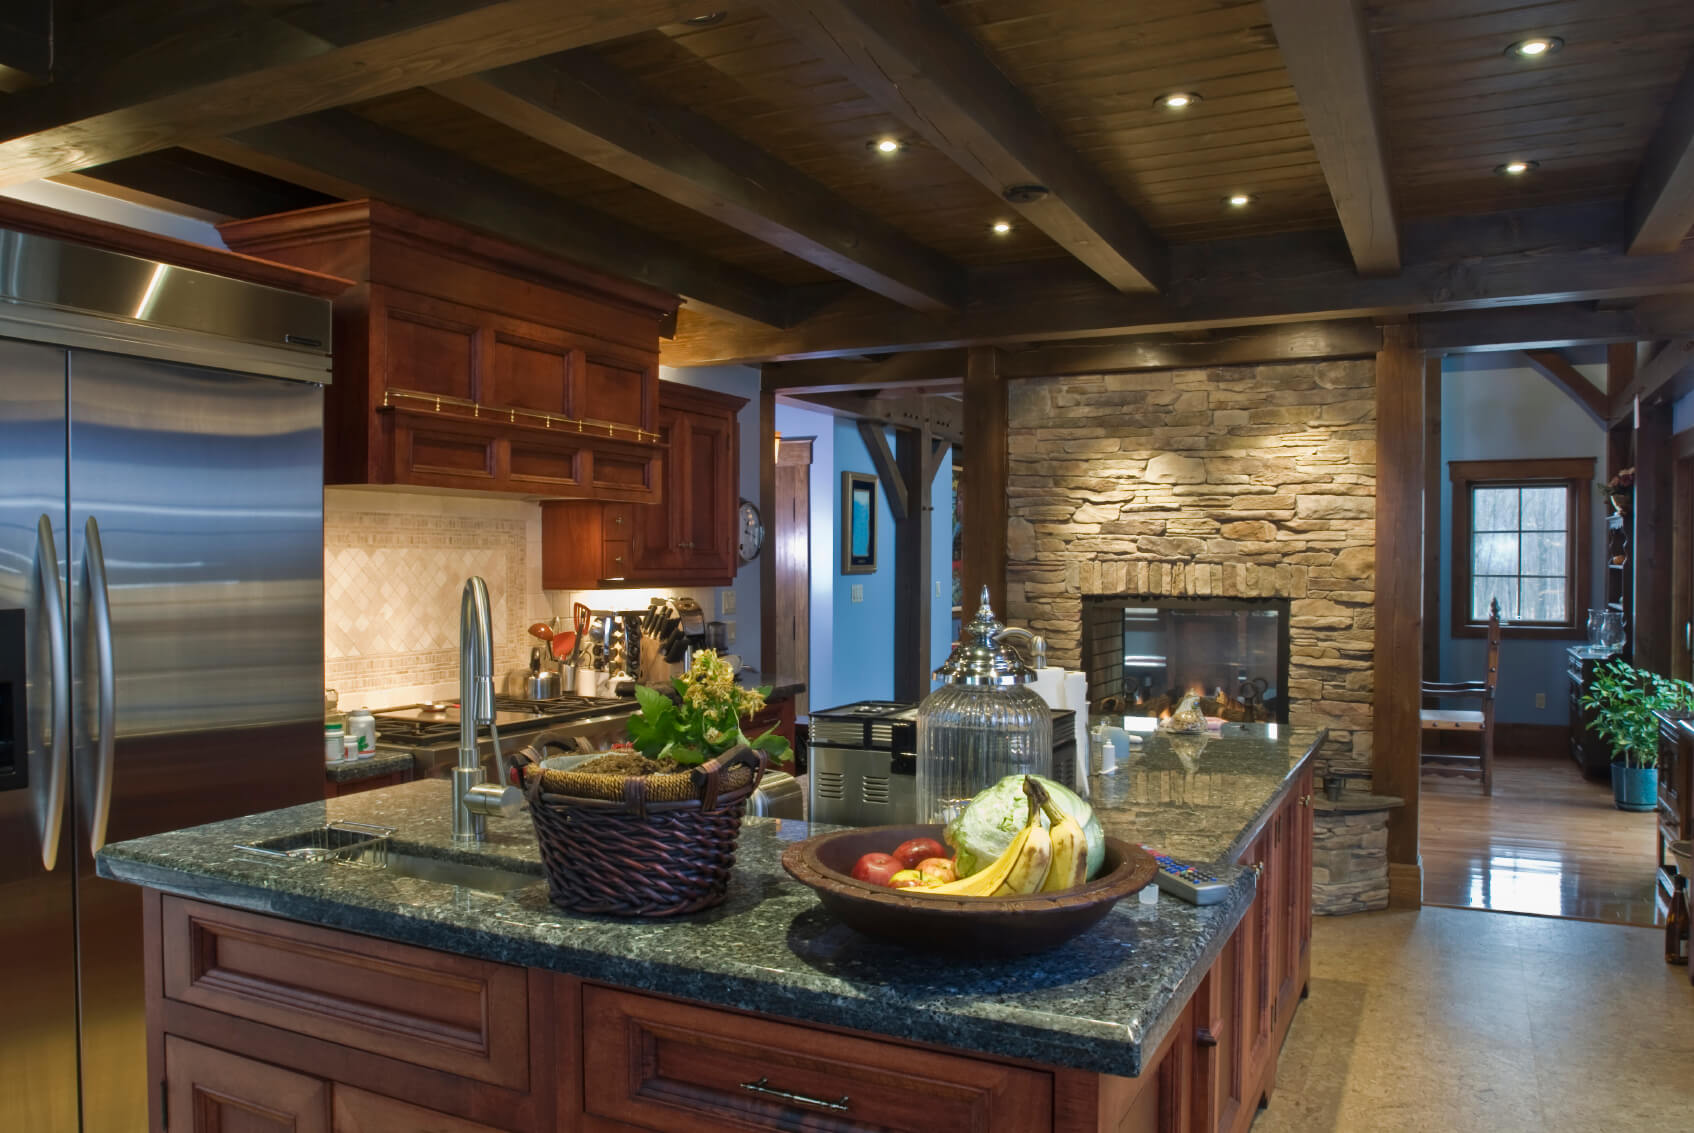 Ordinaire Rustic Look Kitchen Features Brick Pass Through Fireplace Under Dark Wood  Exposed Beams, With